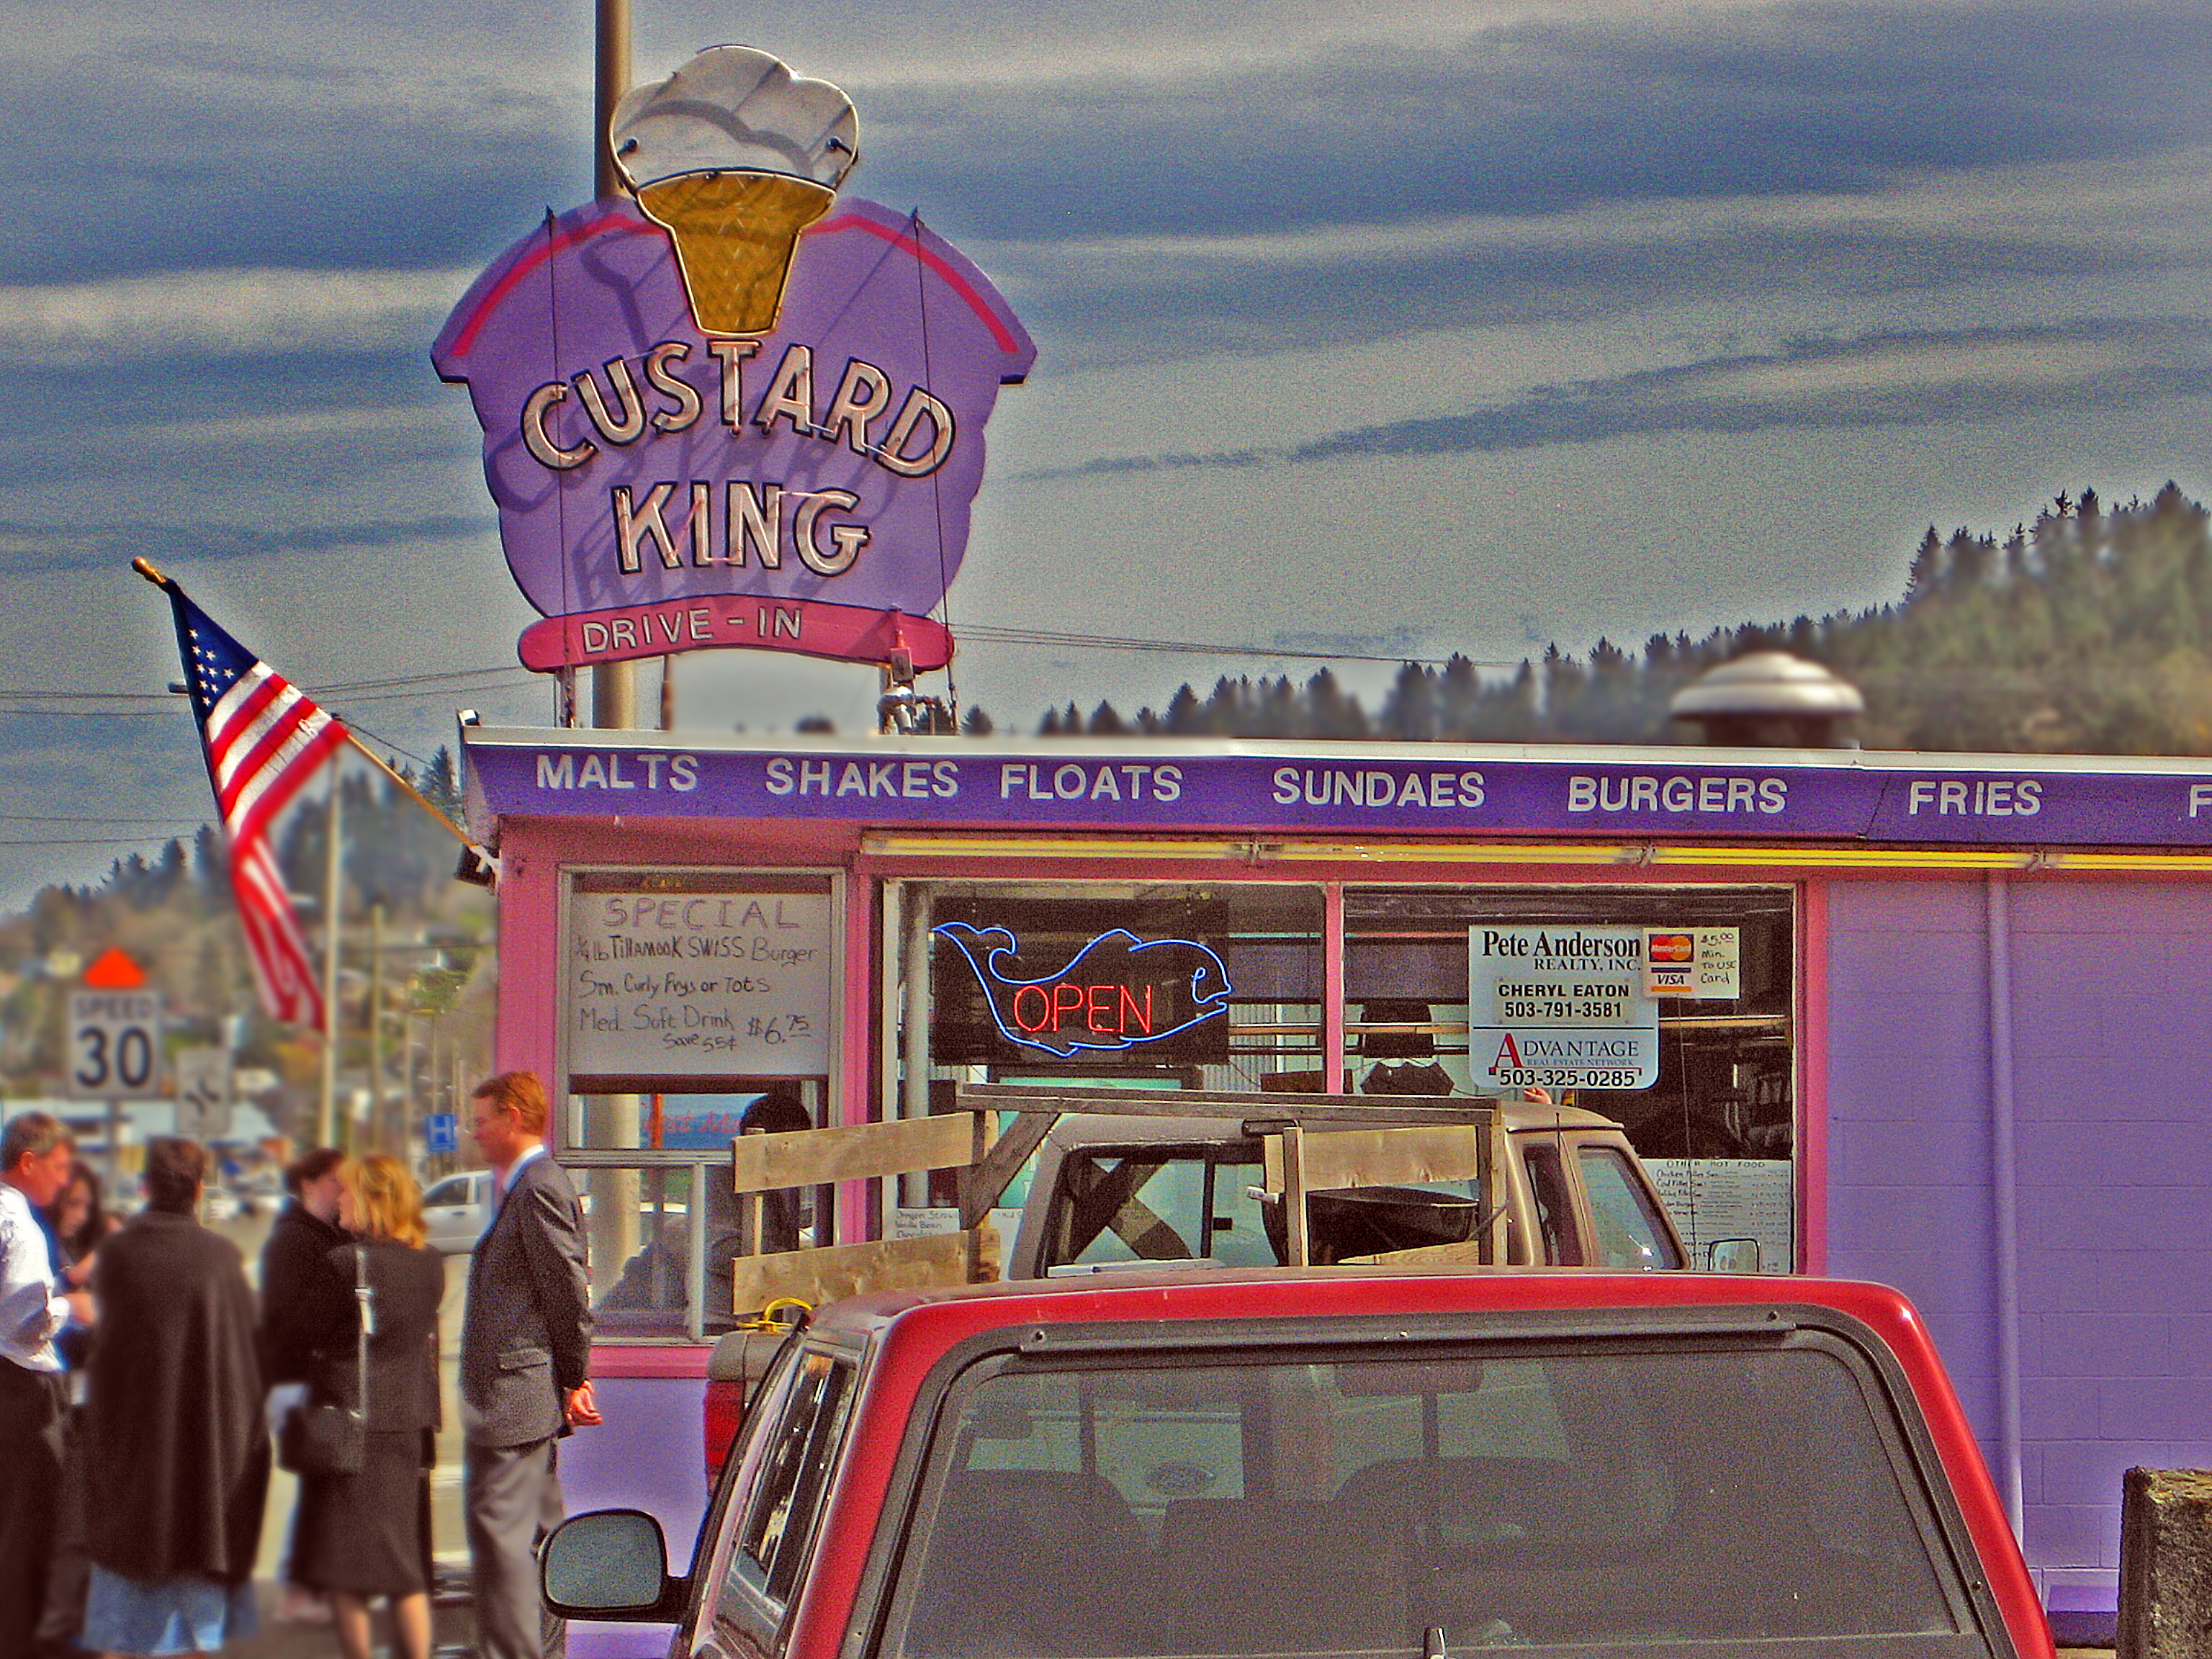 The famous Custard King, in Astoria, Oregon, 2010.